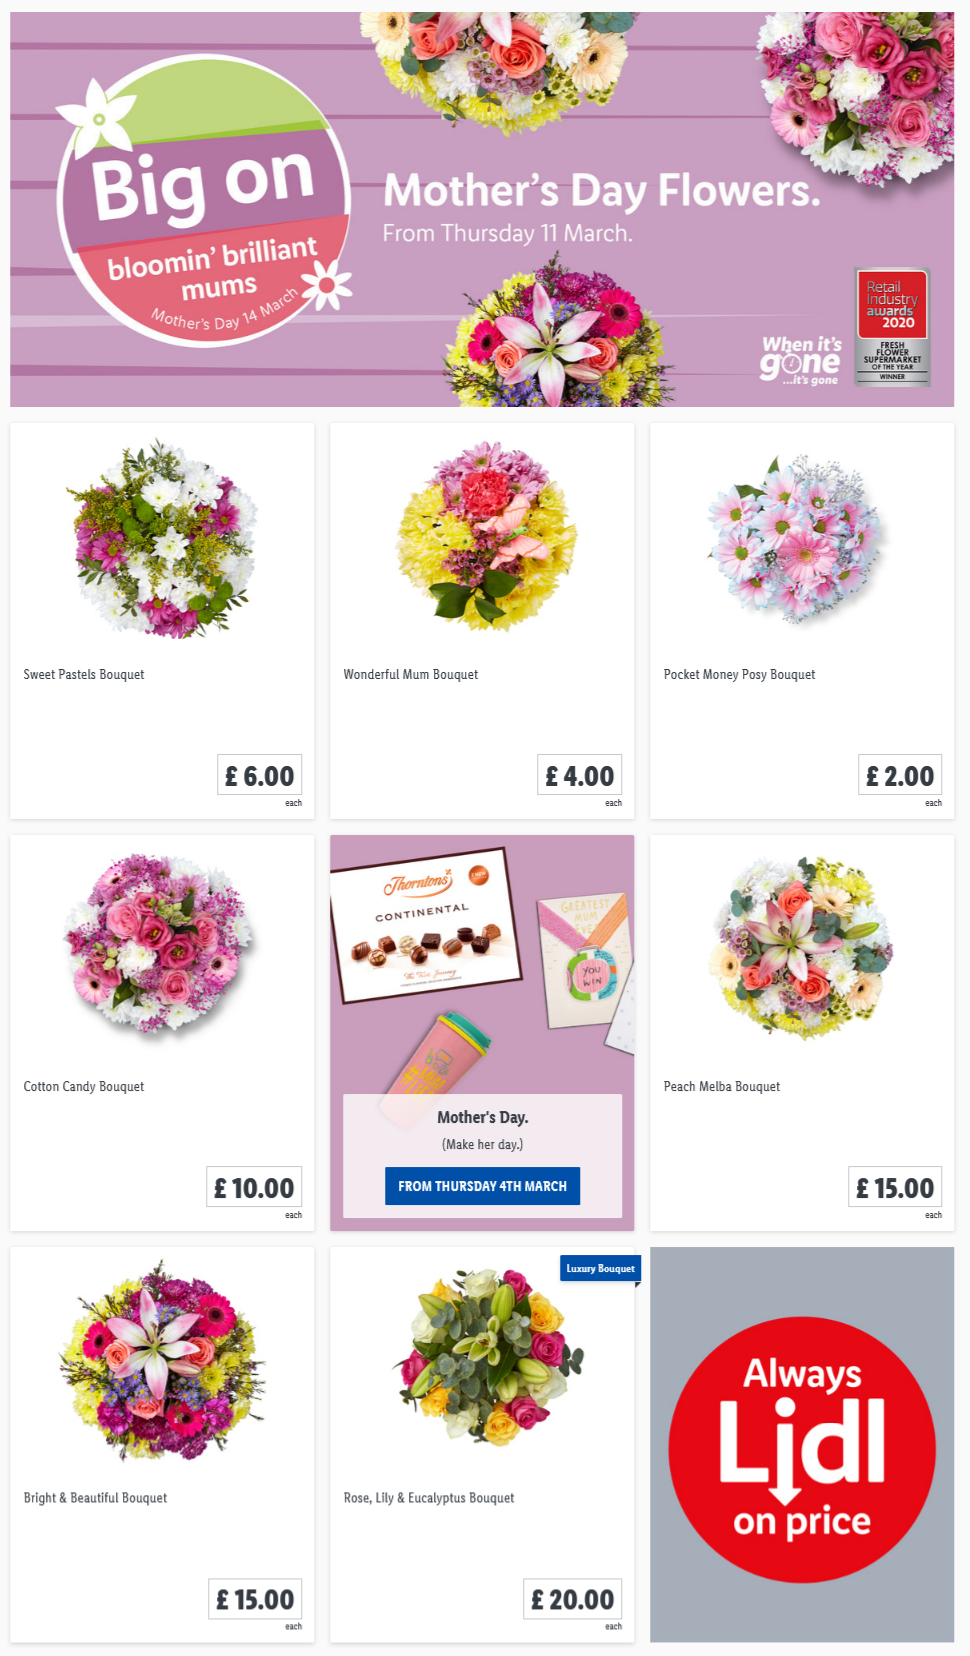 LIDL Mother's Day Flowers Offers from 11th March 2021